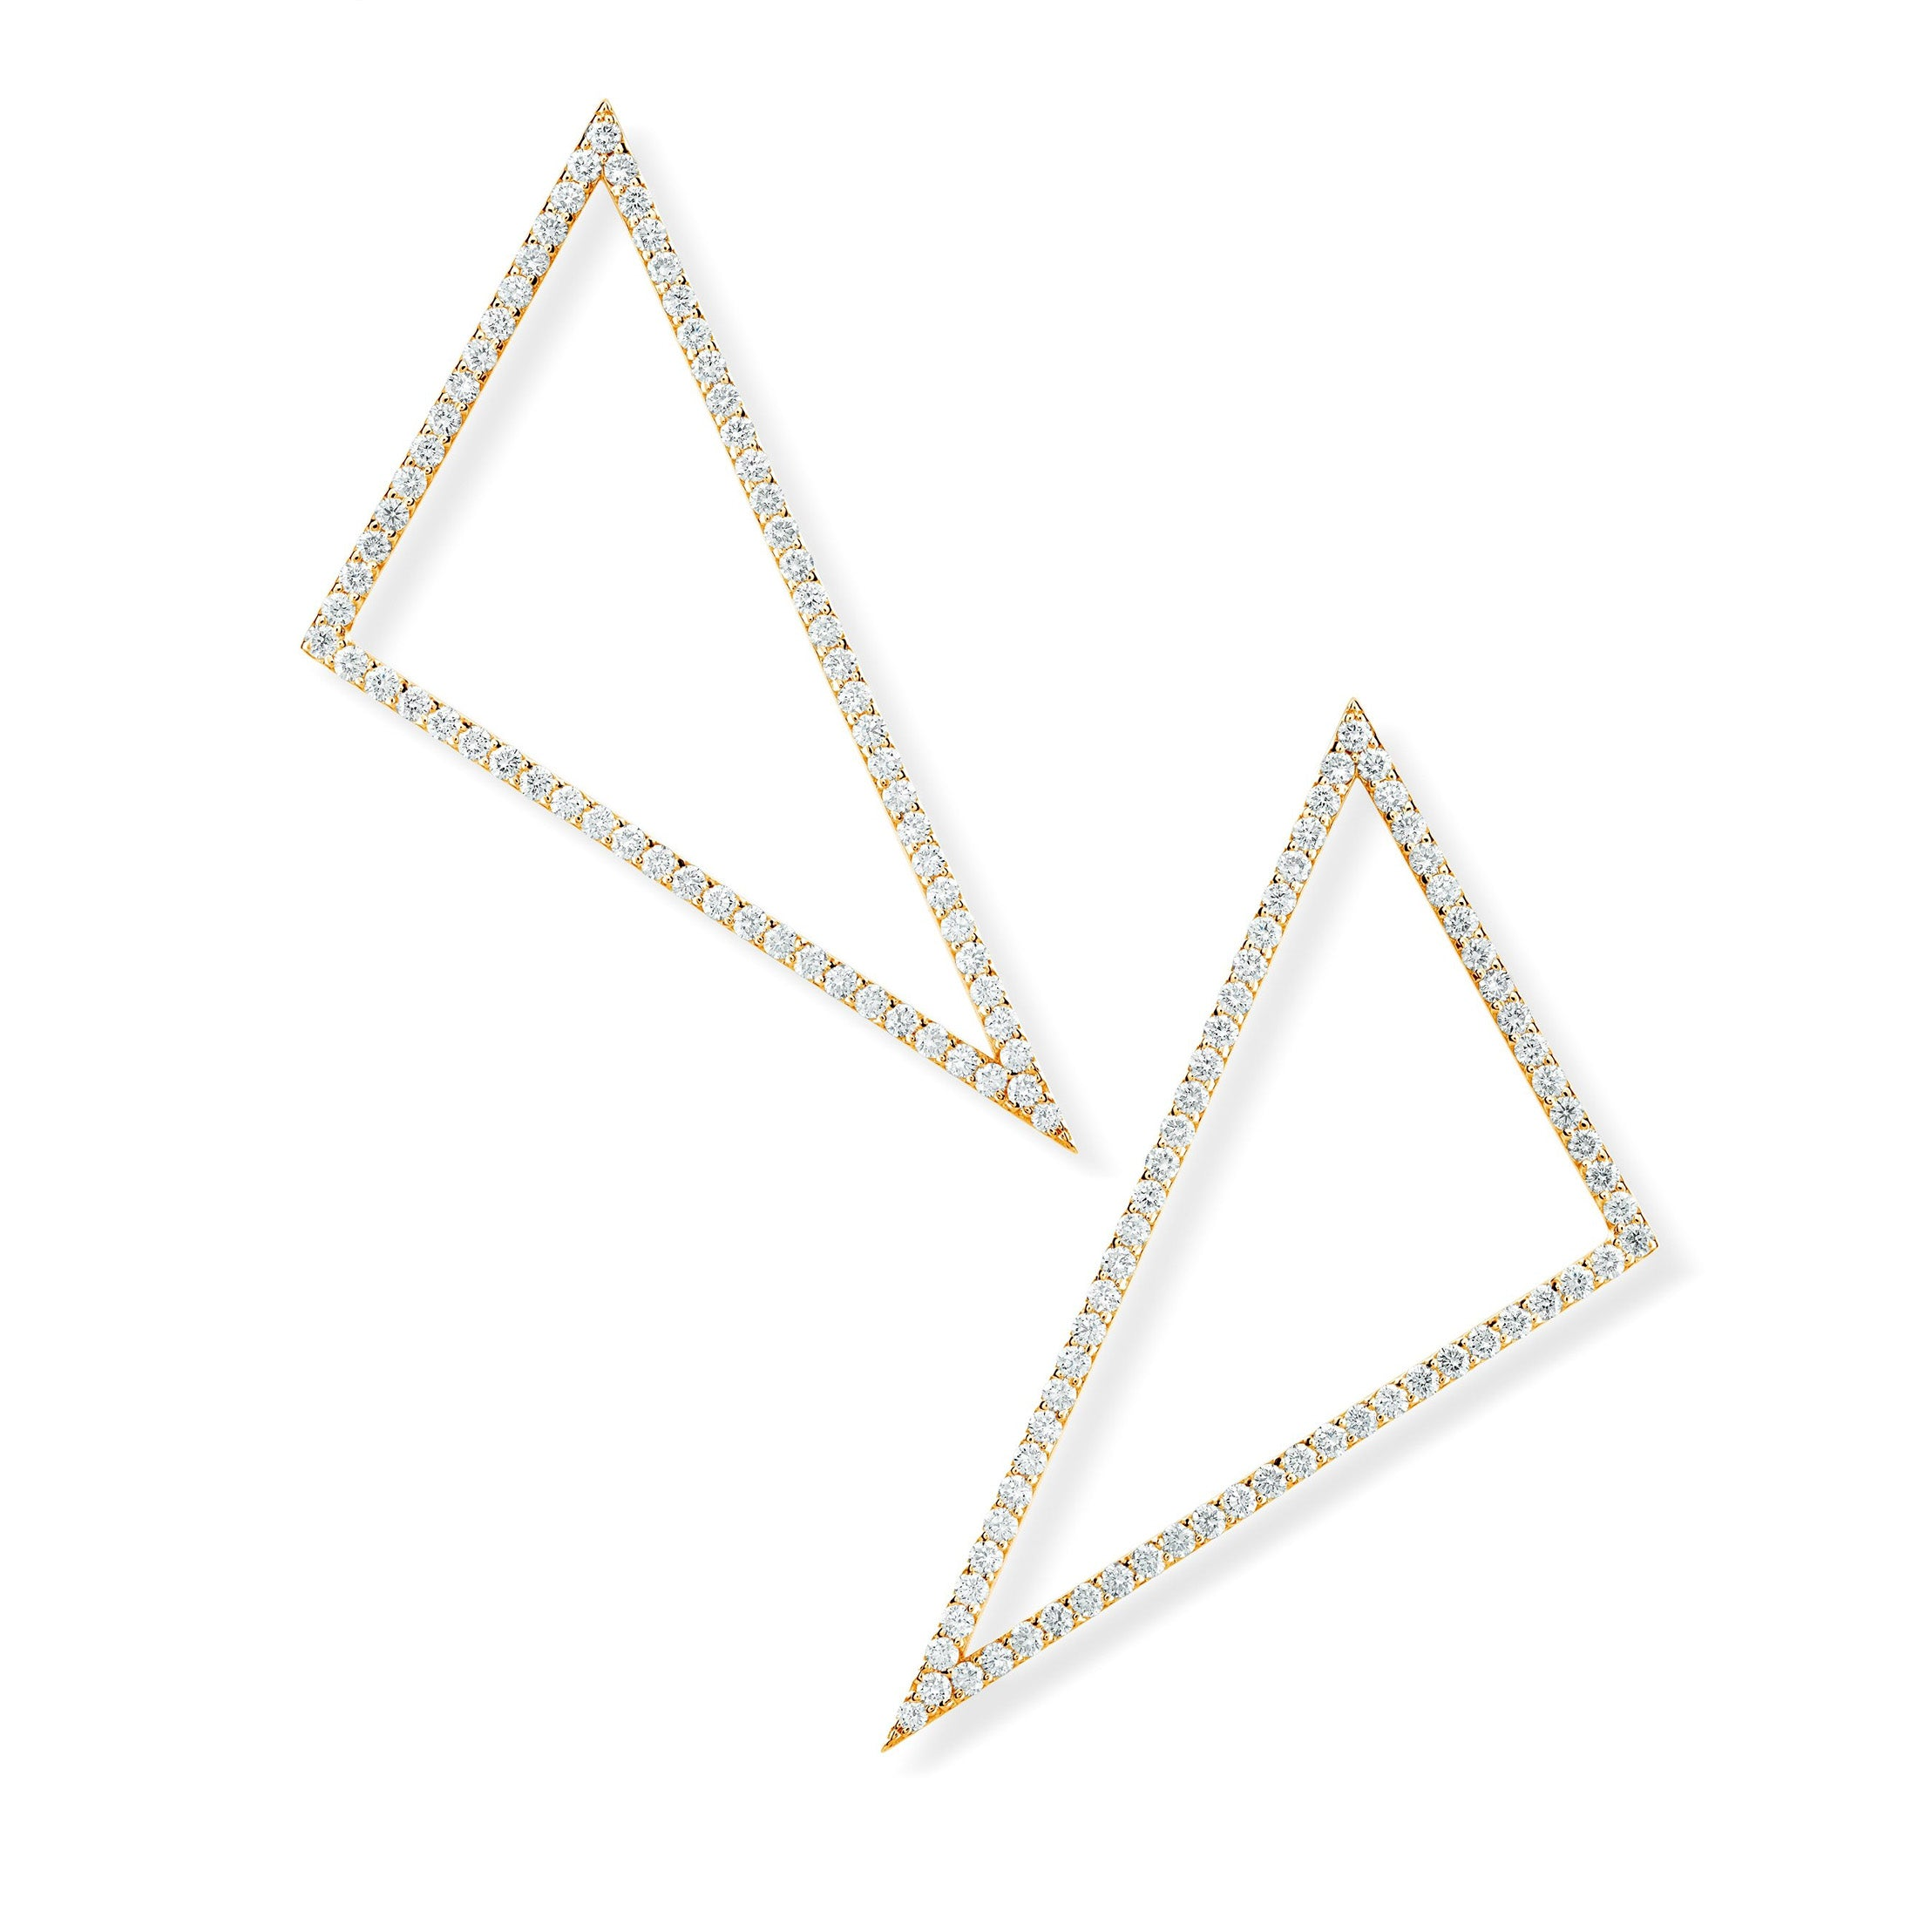 Hinge Triangle Earrings